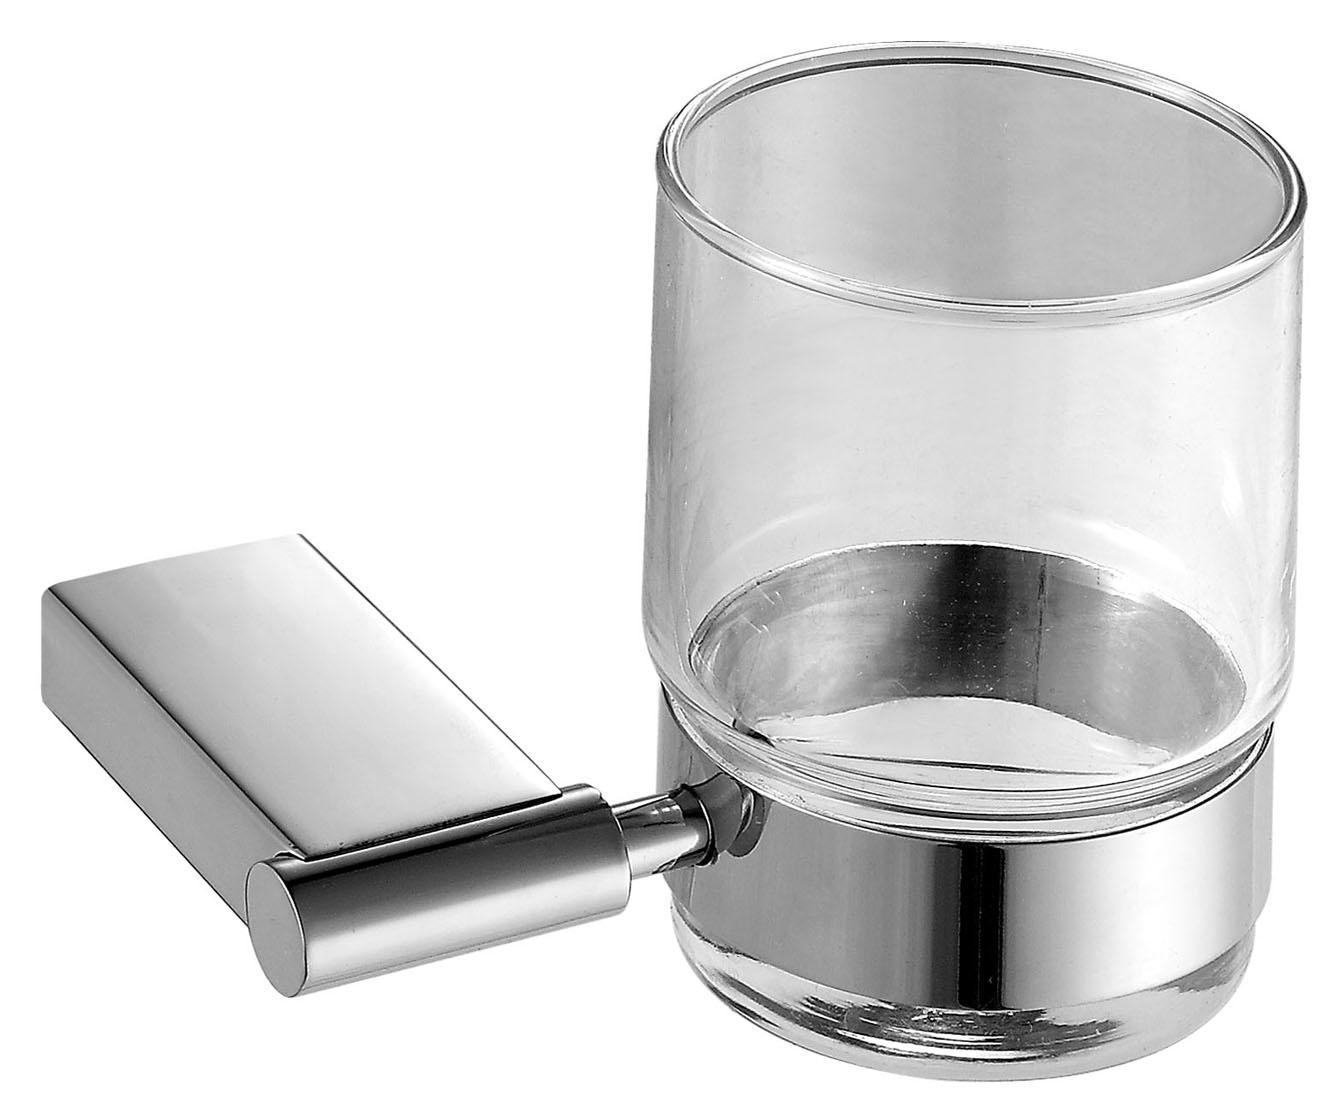 durable hotel stainless steel bathroom accessories company for bathroom-1